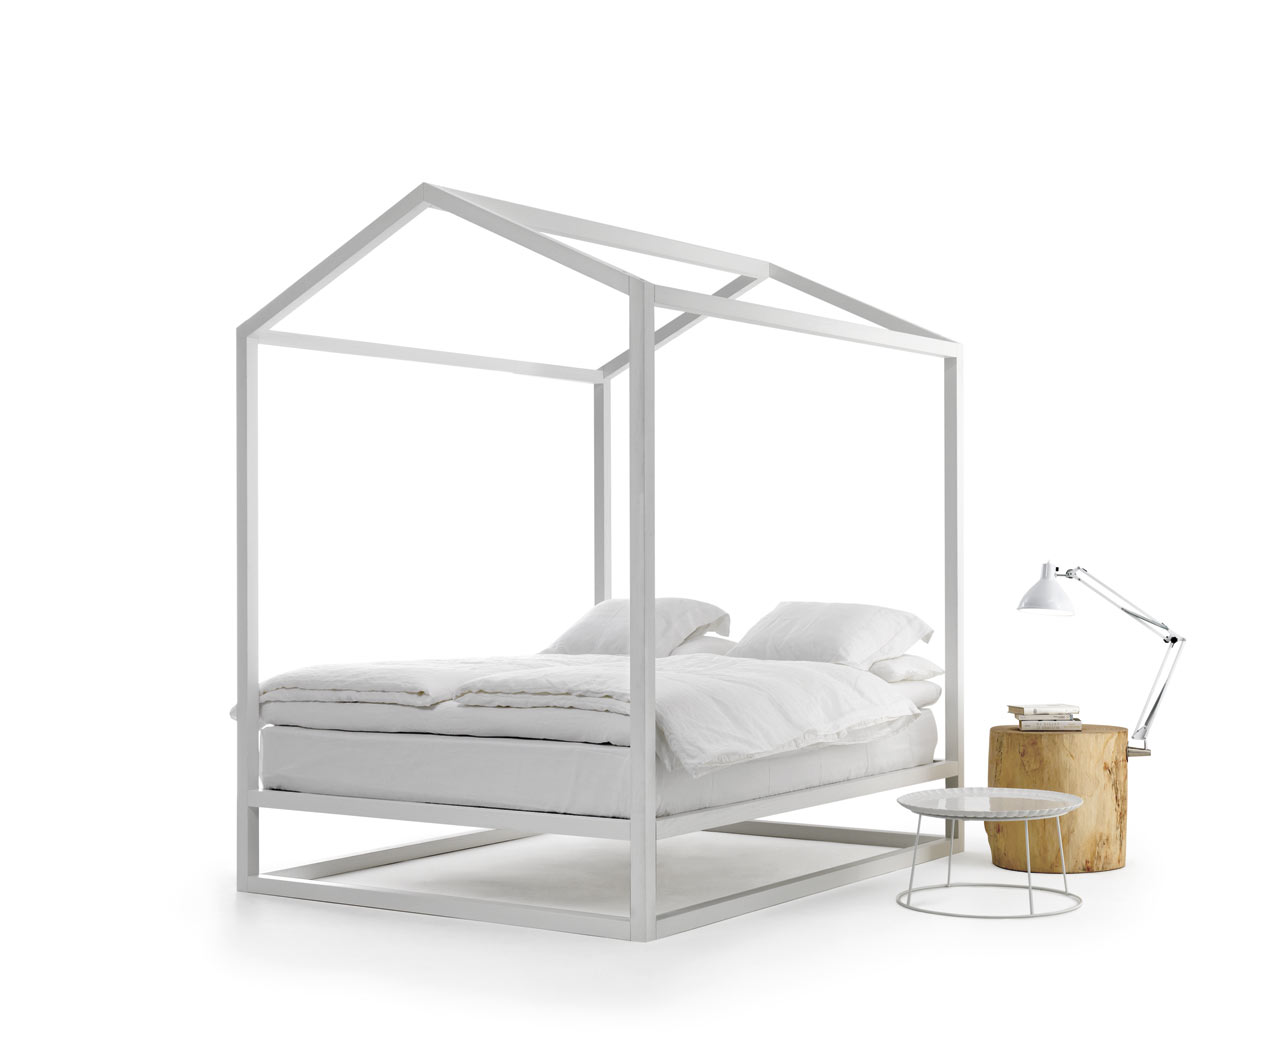 Casetta House-Shaped Bed by Mogg